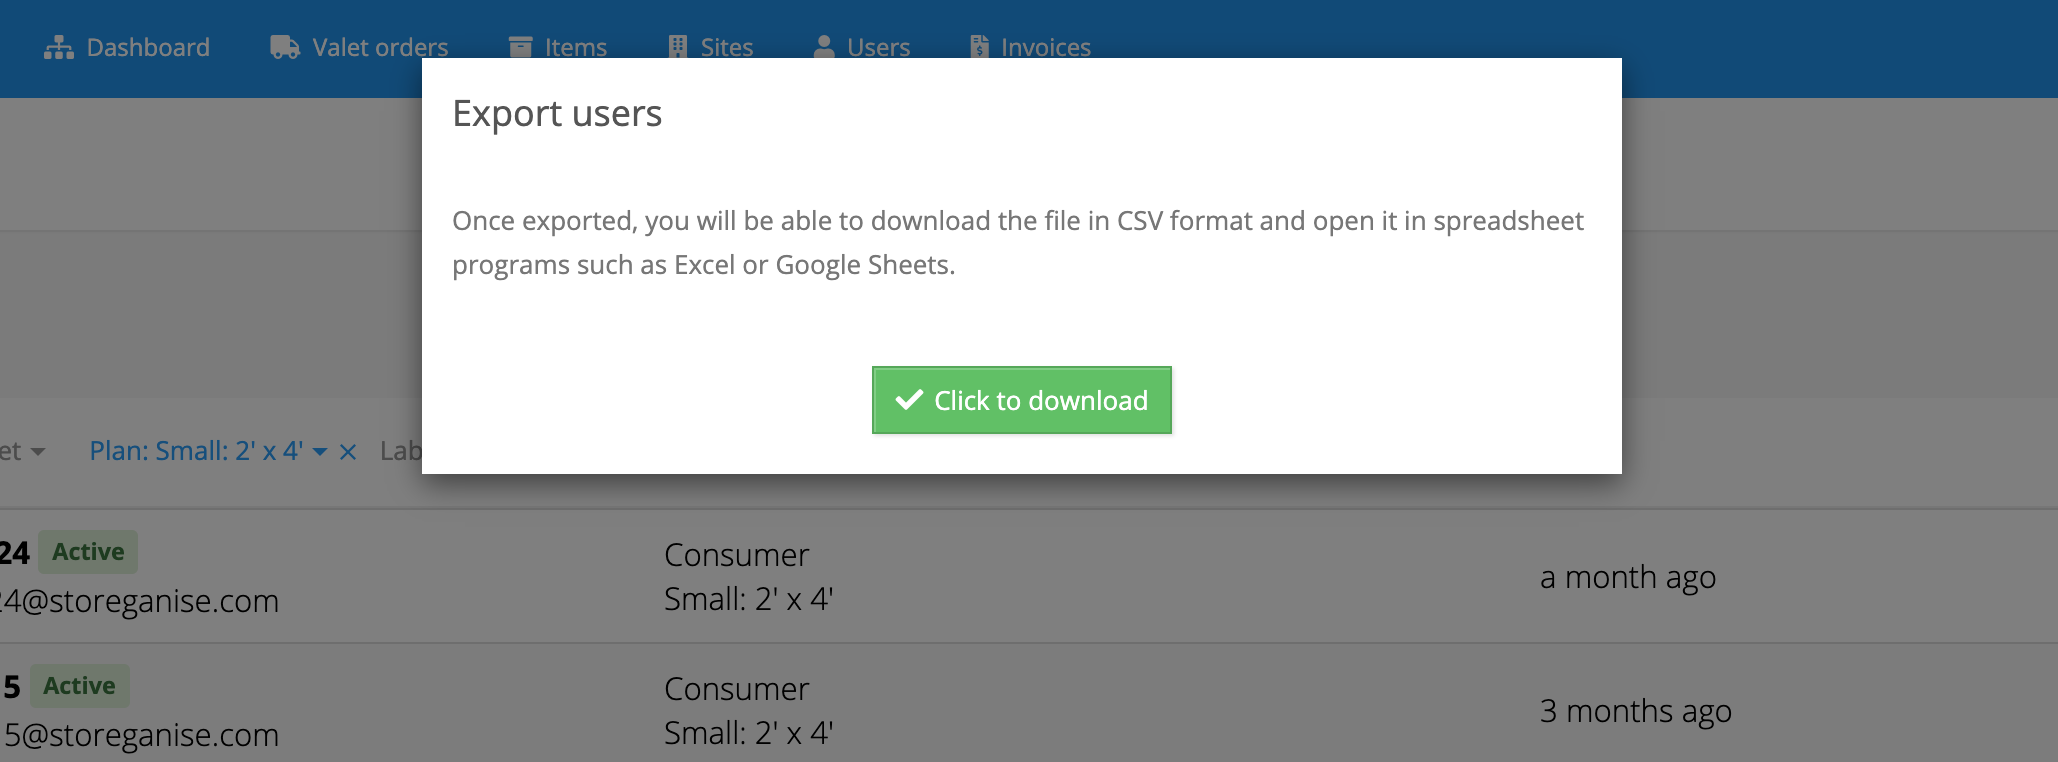 button to export users and generate csv file